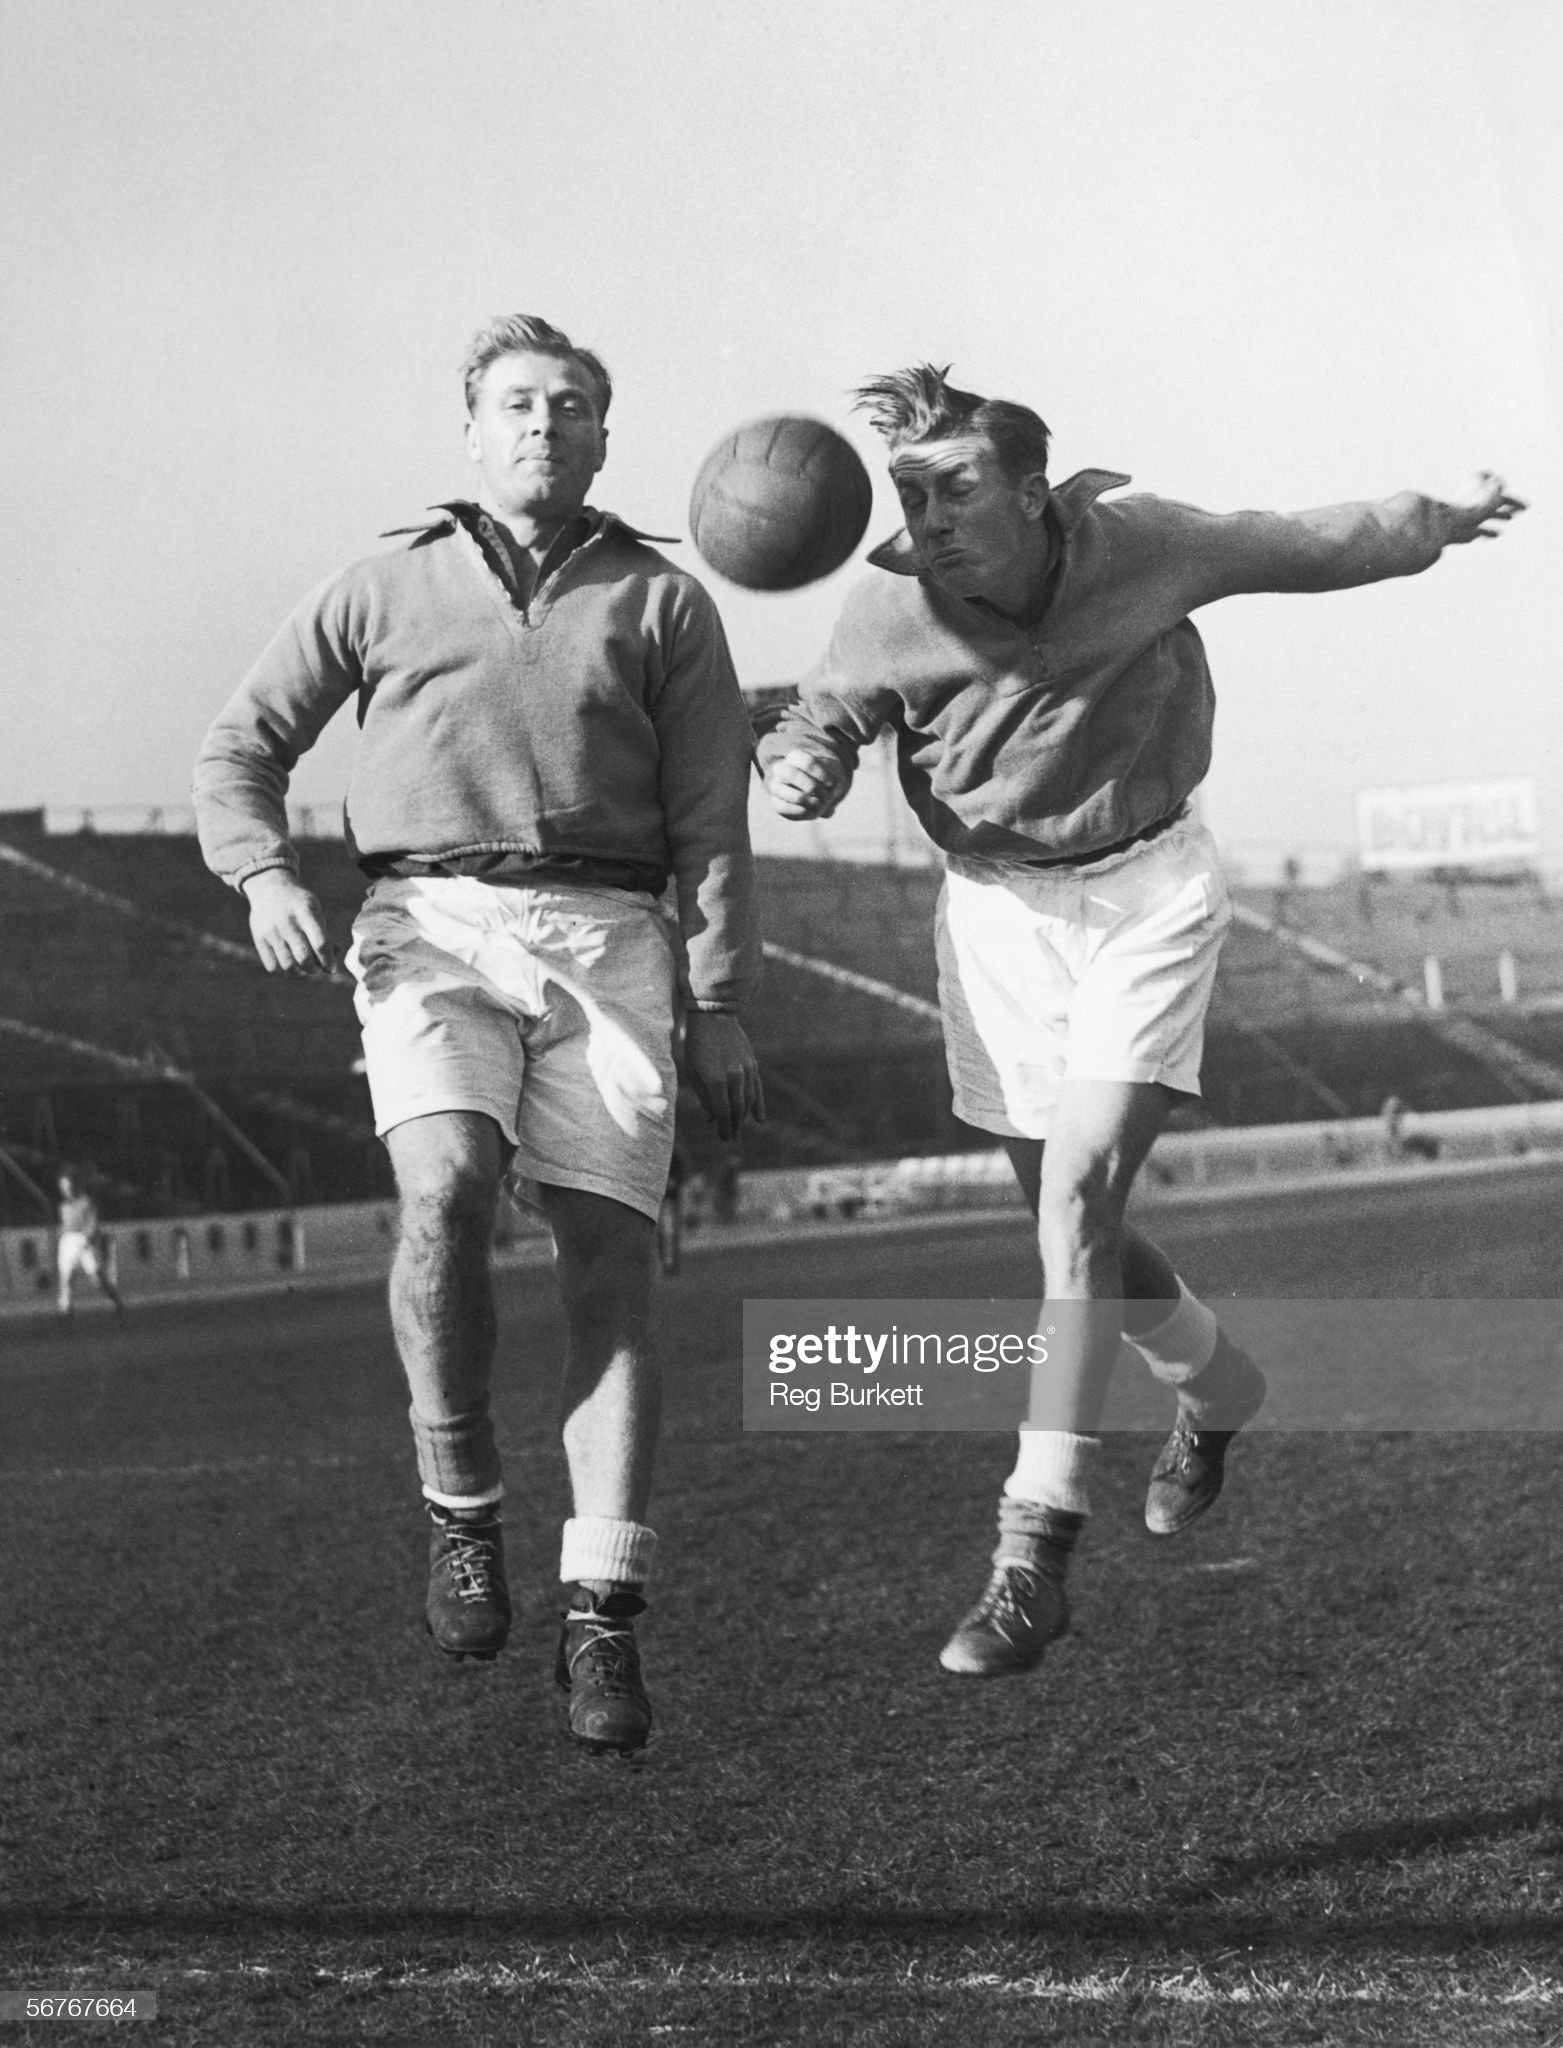 Prince Philip has passed away Cousins-jack-left-and-redfern-froggatt-who-play-for-portsmouth-and-picture-id56767664?s=2048x2048